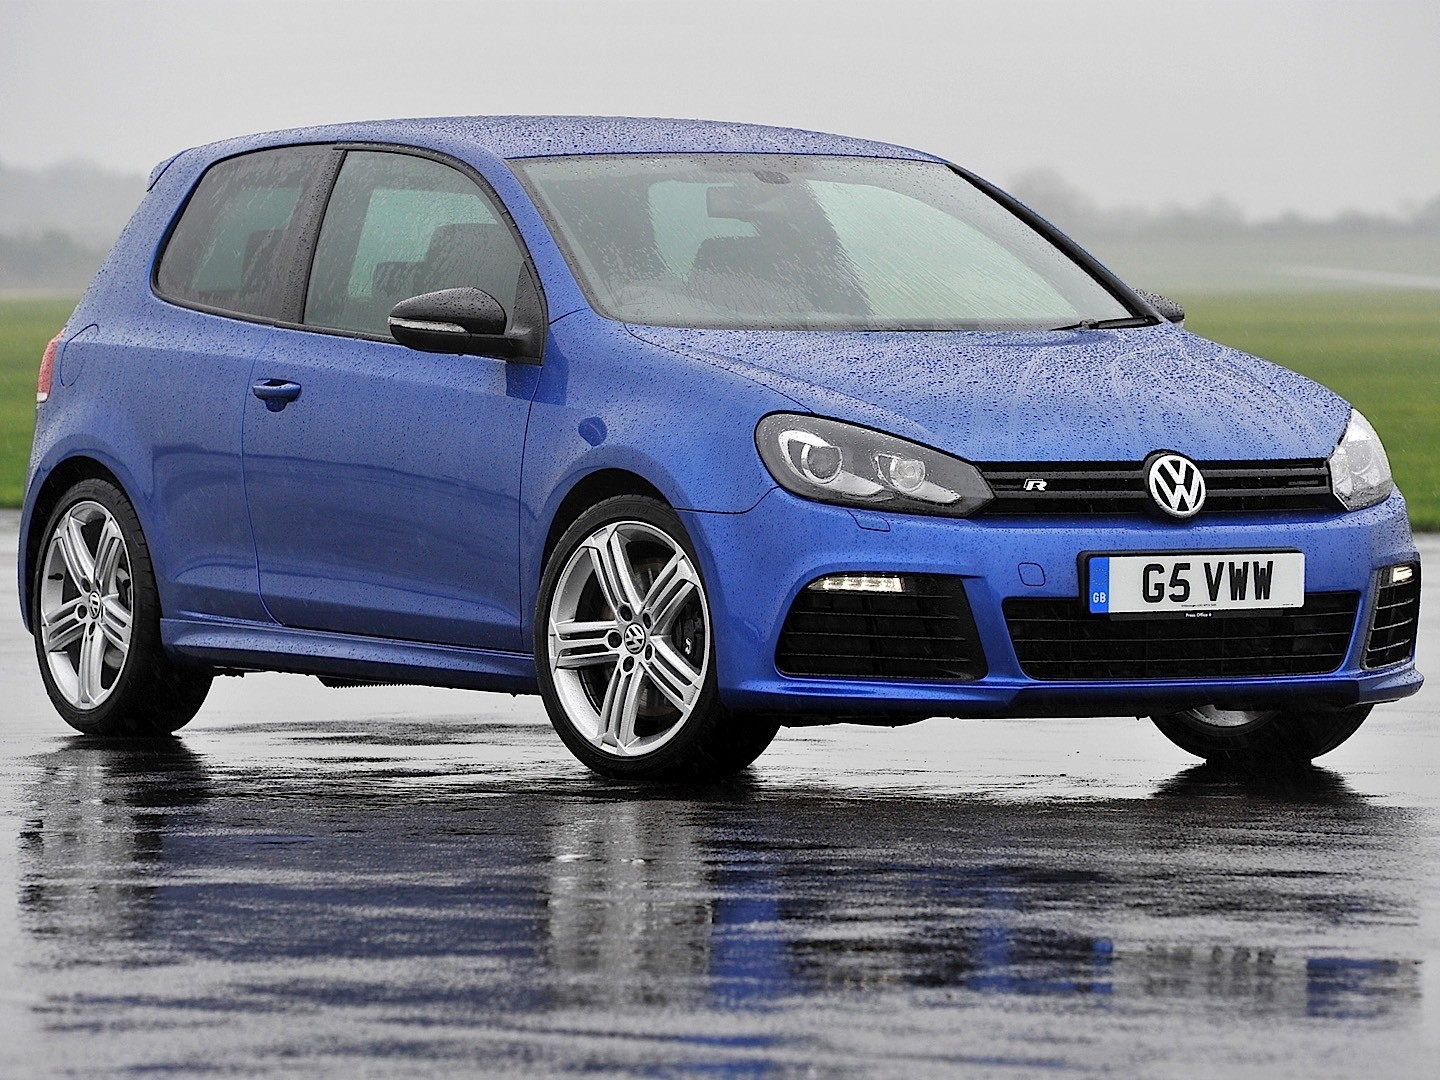 volkswagen golf vi r 3 doors specs photos 2009 2010. Black Bedroom Furniture Sets. Home Design Ideas